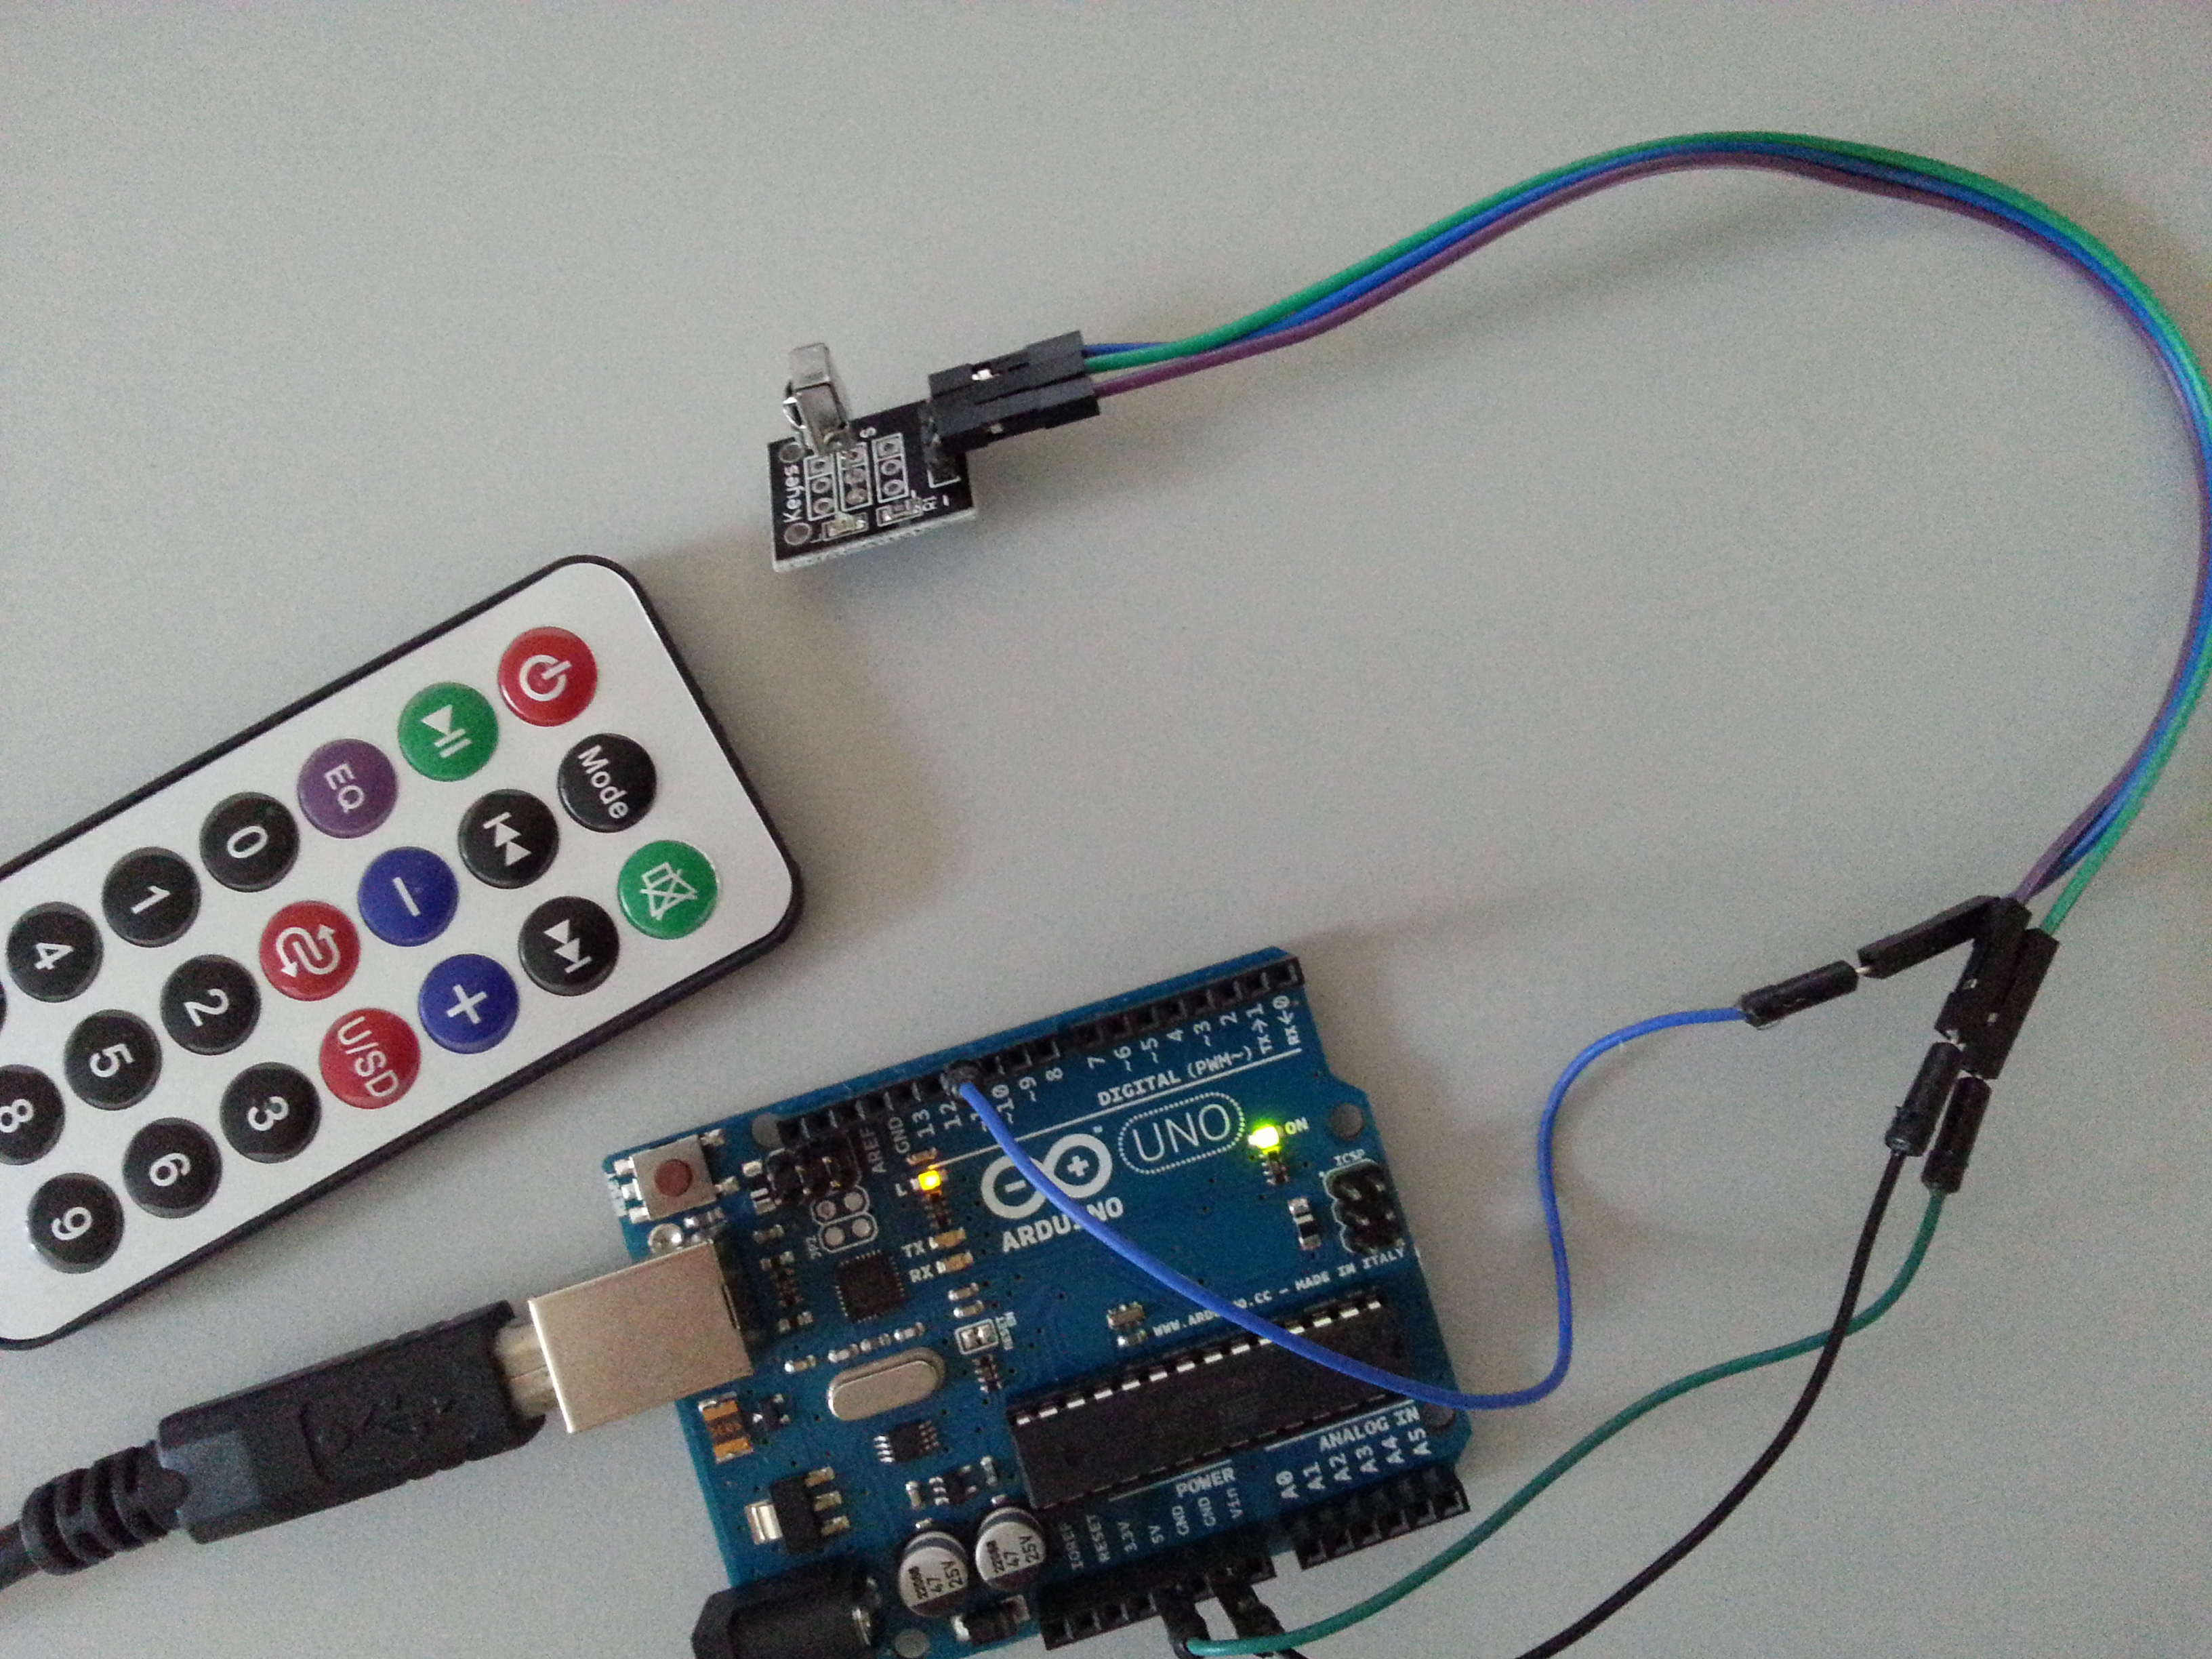 Arduino ide for atmel